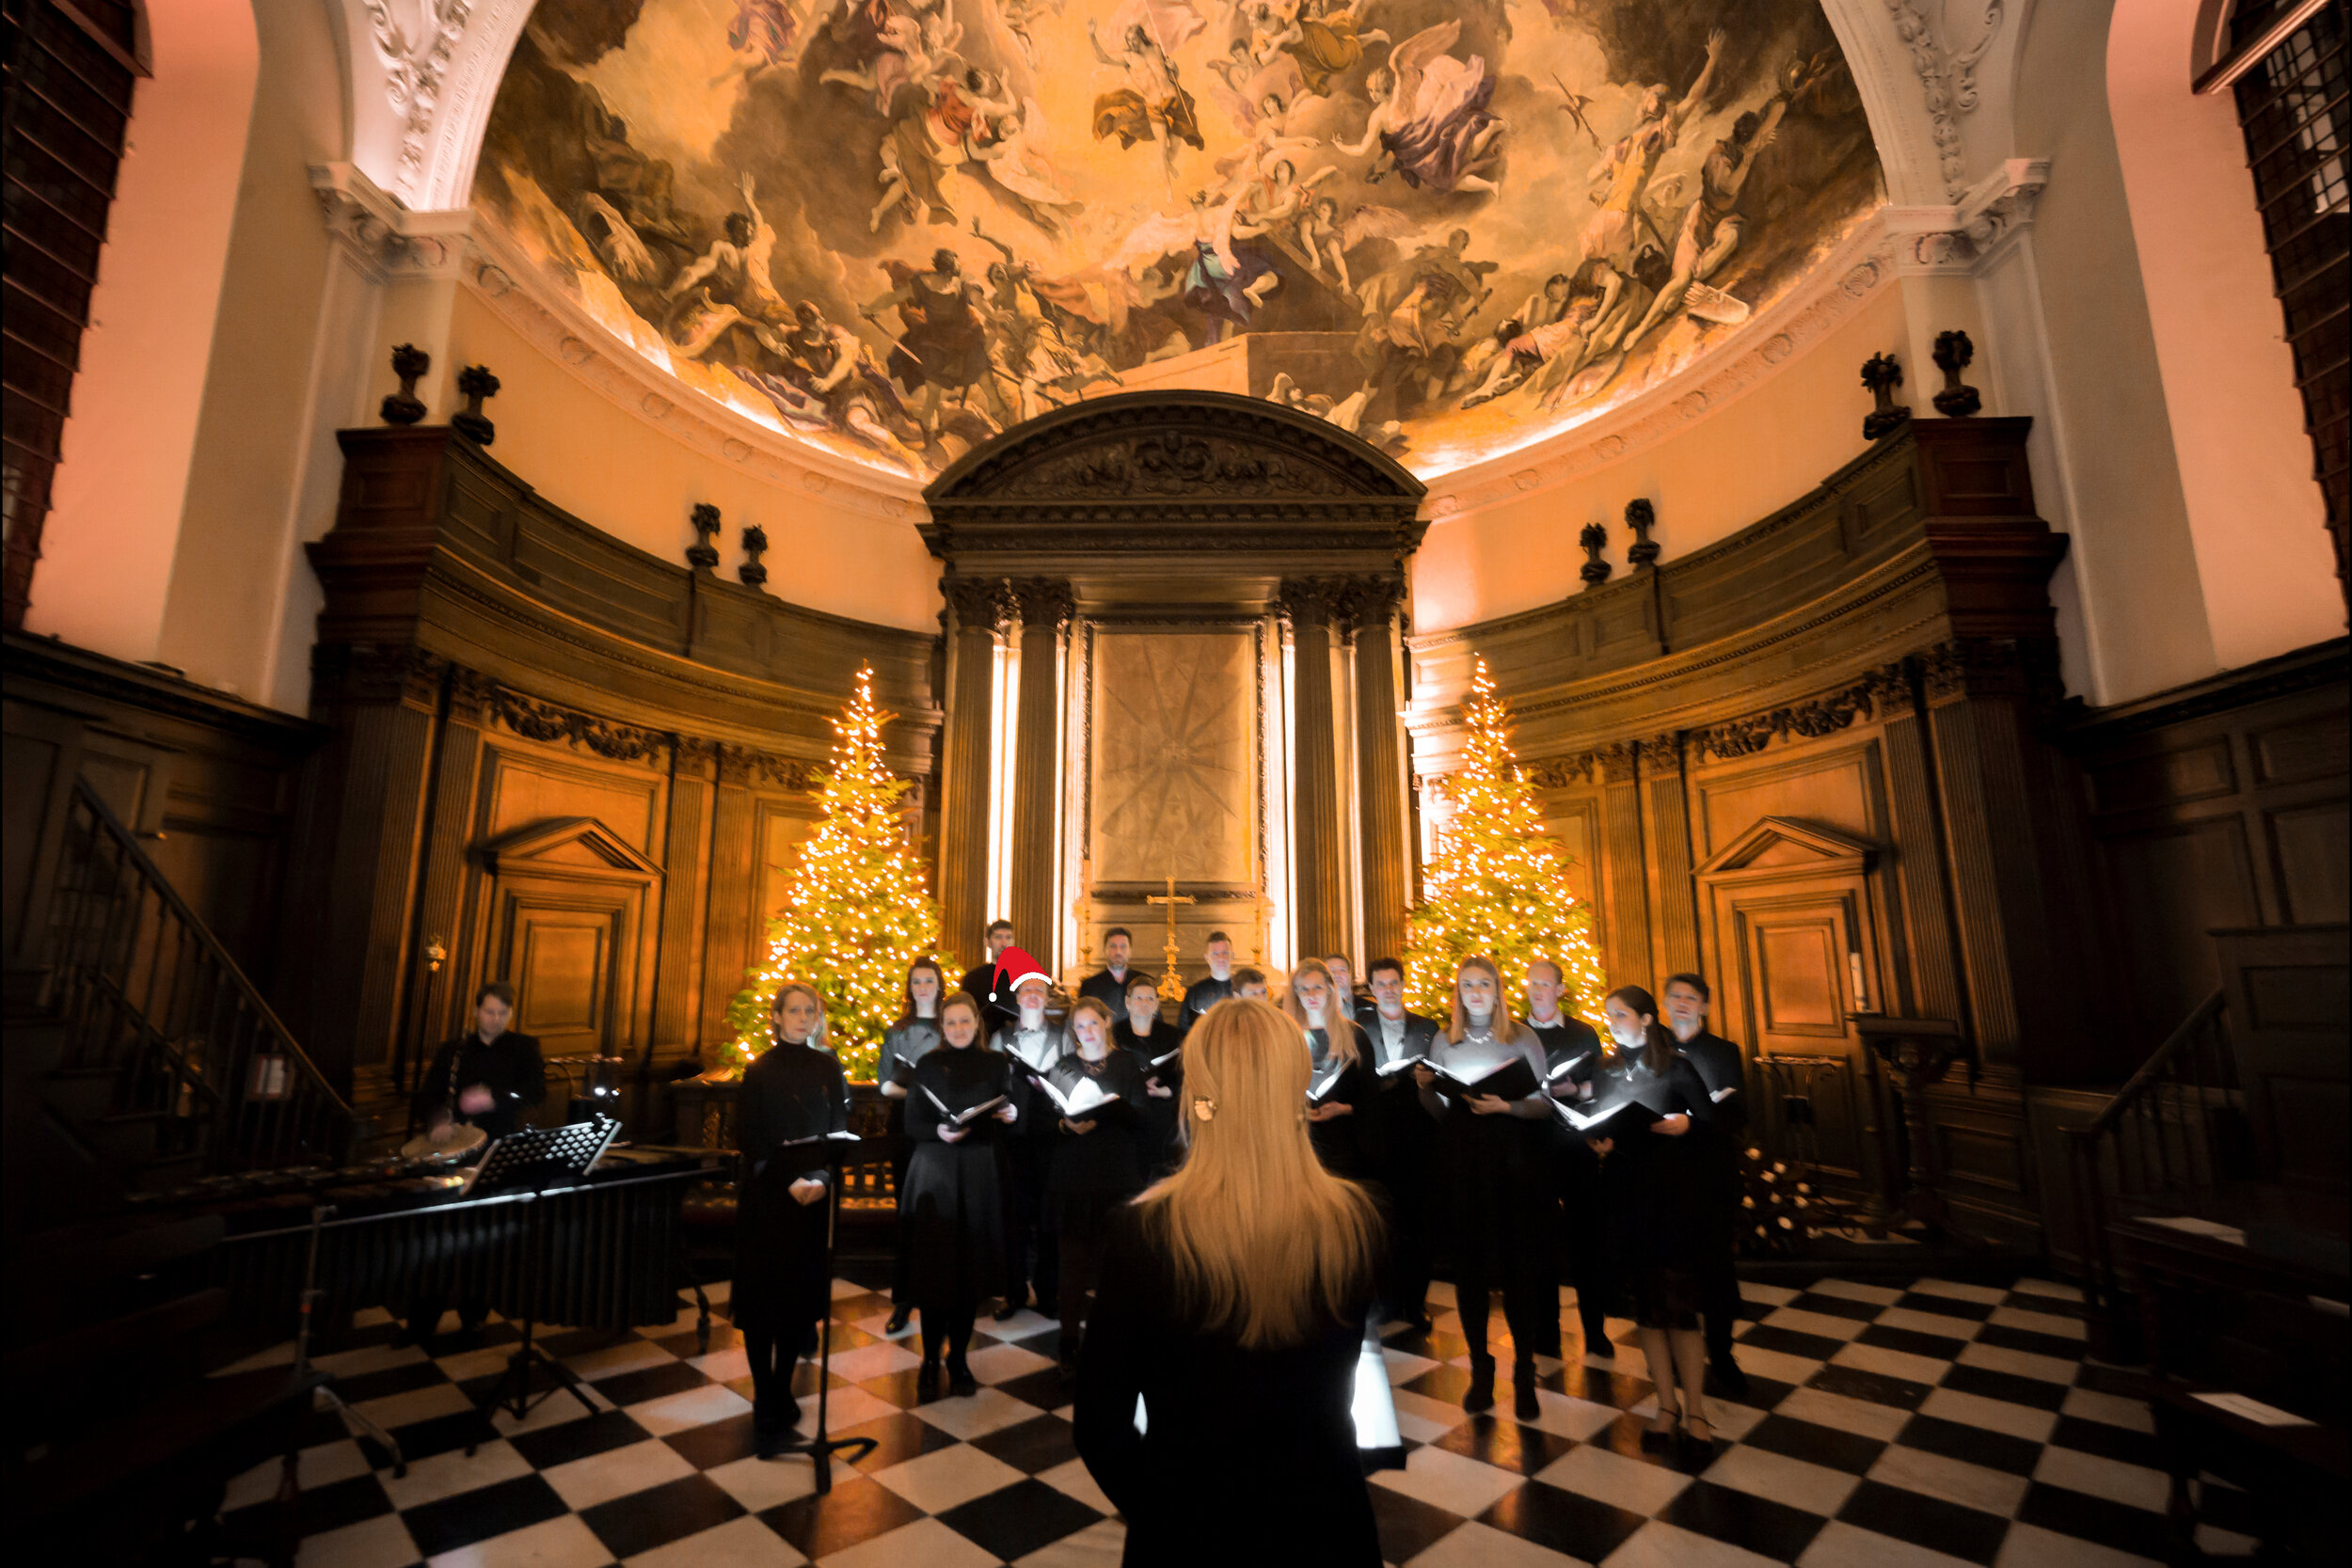 A seasonal special…. - At ORA Singers, we can't wait for Christmas, so we are offering composers nationwide the ORA Singers' Christmas Gift of a world-class professional recording of their Christmas carols.We'd love to hear Christmas works from composers of all ages and stages. and will be selecting 12 composers to have their compositions recorded by ORA Singers this December, each receiving a professional recording of their composition! Composers will also be able to join us on the 10th or 11th of December, during the rehearsal stages of their pieces, working alongside Suzi Digby OBE to fine tune their works.Get your entries to us before Monday, 18th November, for your chance to be considered this Christmas!